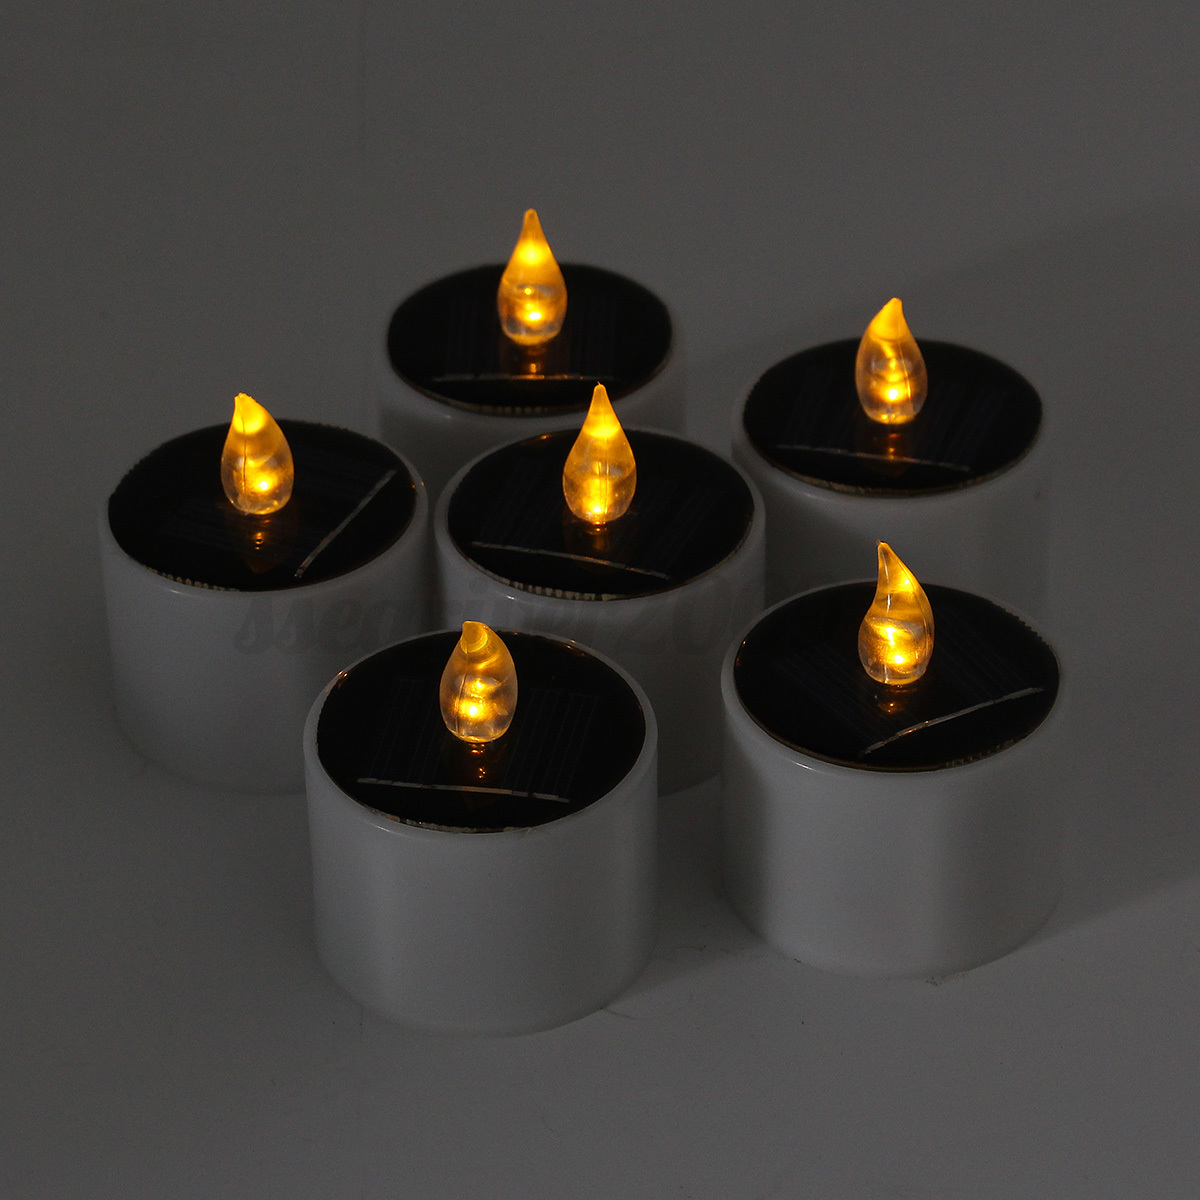 6pcs solar powered led candle flameless warm white tealight wedding decoration ebay. Black Bedroom Furniture Sets. Home Design Ideas